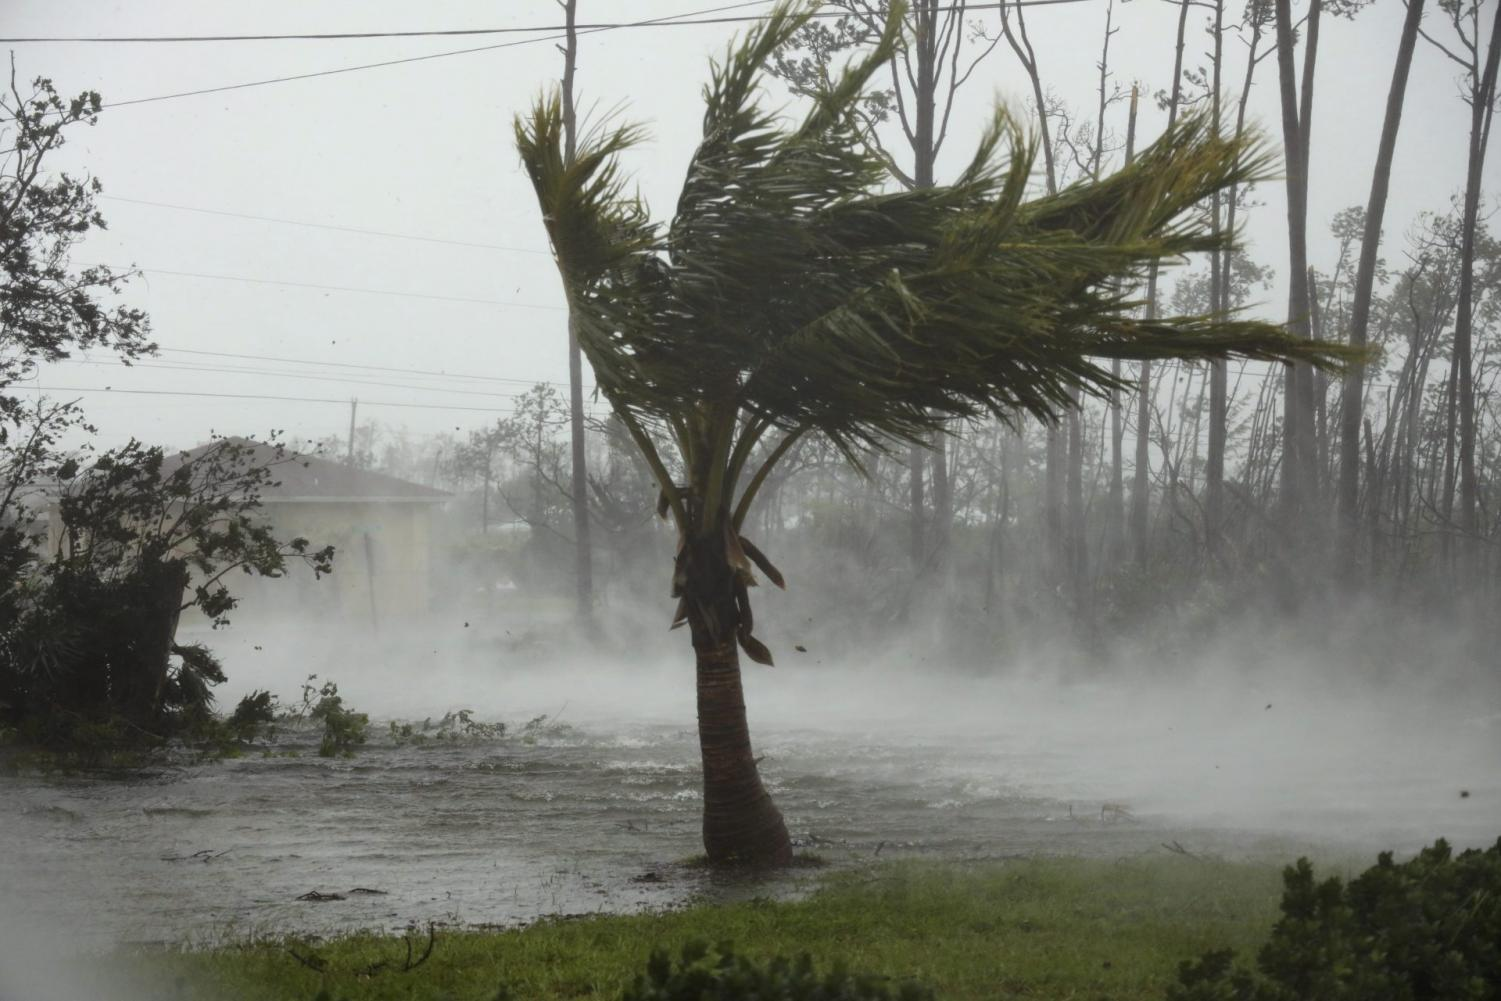 Hurricane Dorian hovered over the Bahamas on Monday, pummeling the islands with a fearsome Category 4 assault that forced even rescue crews to take shelter until the onslaught passes.